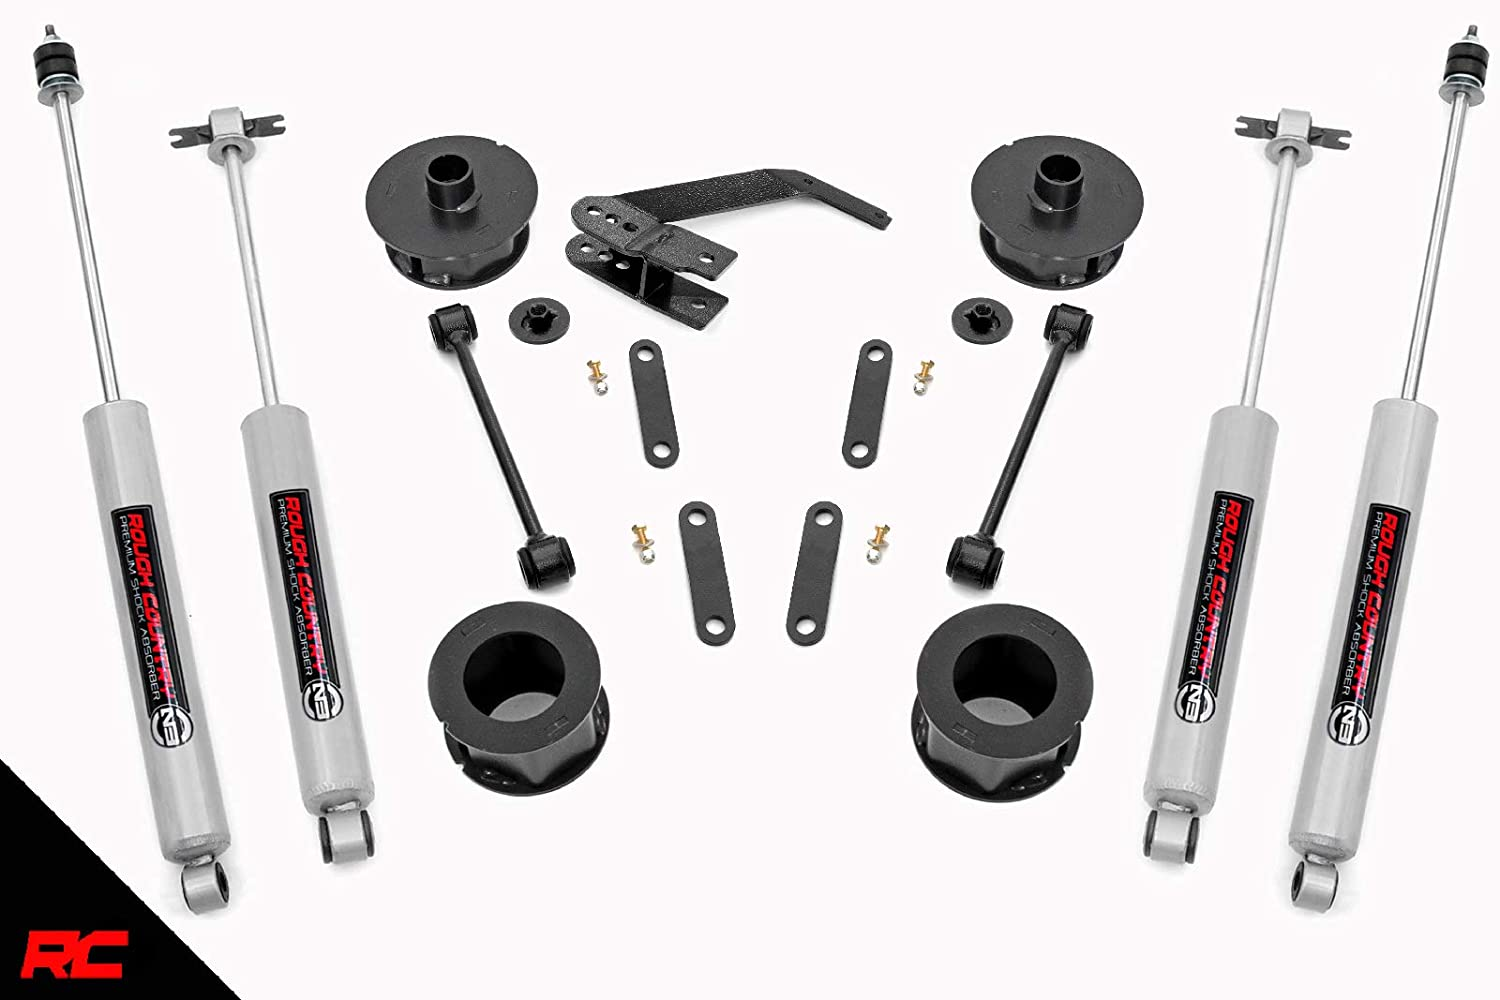 Rough Country 65730 Lift Kit Series II//N3 Shocks 2.5 w fits 2007-2018 Jeep Wrangler JK